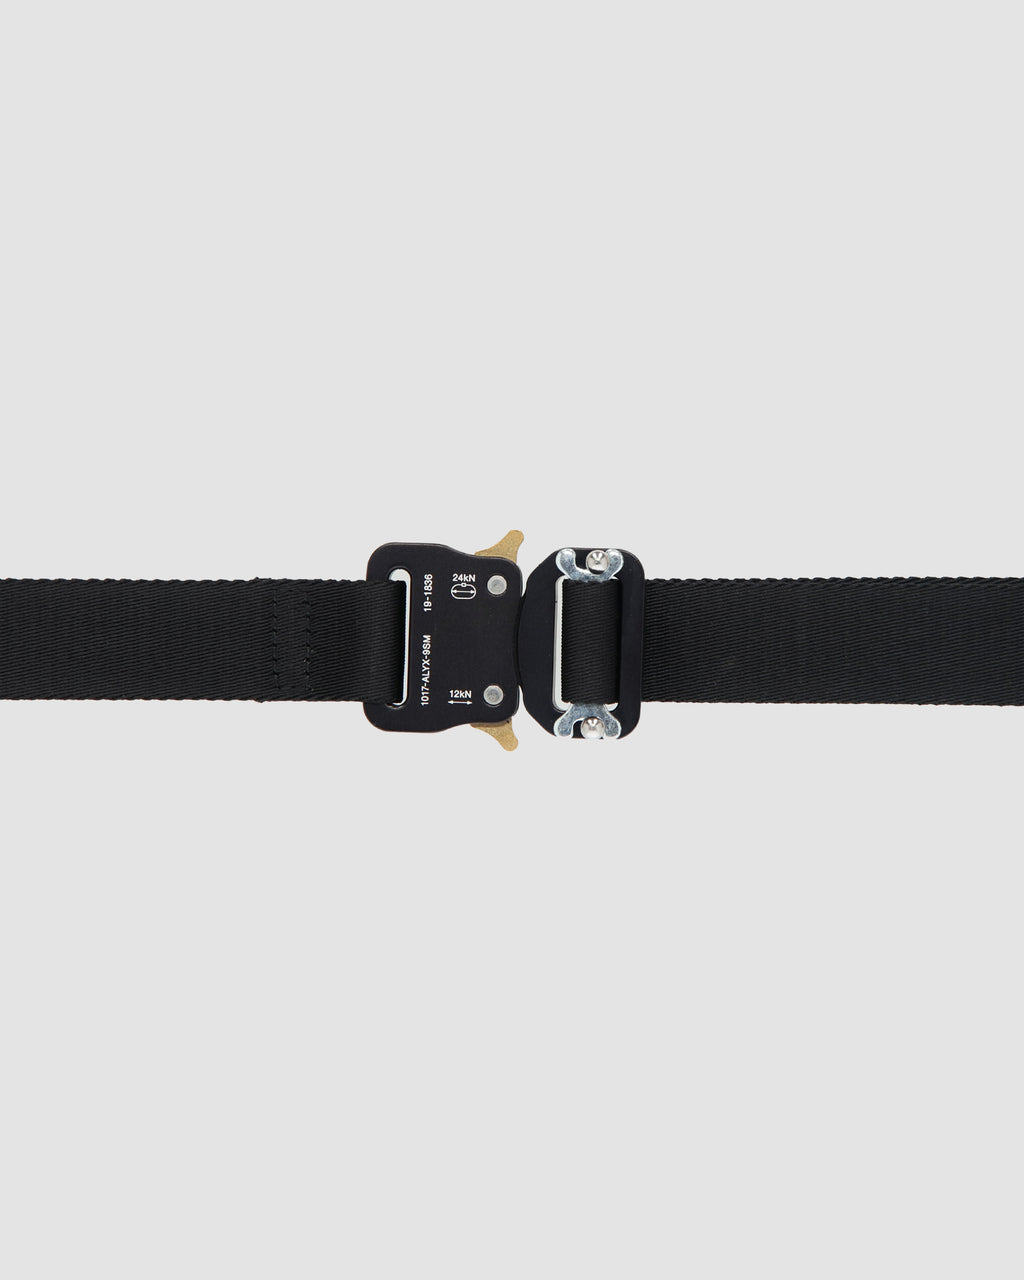 1017 ALYX 9SM | MEDIUM ROLLERCOASTER BELT | Belt | Accessories, Belt, BELTS, BLACK, Google Shopping, Man, S20, S20EXSH, UNISEX, Woman